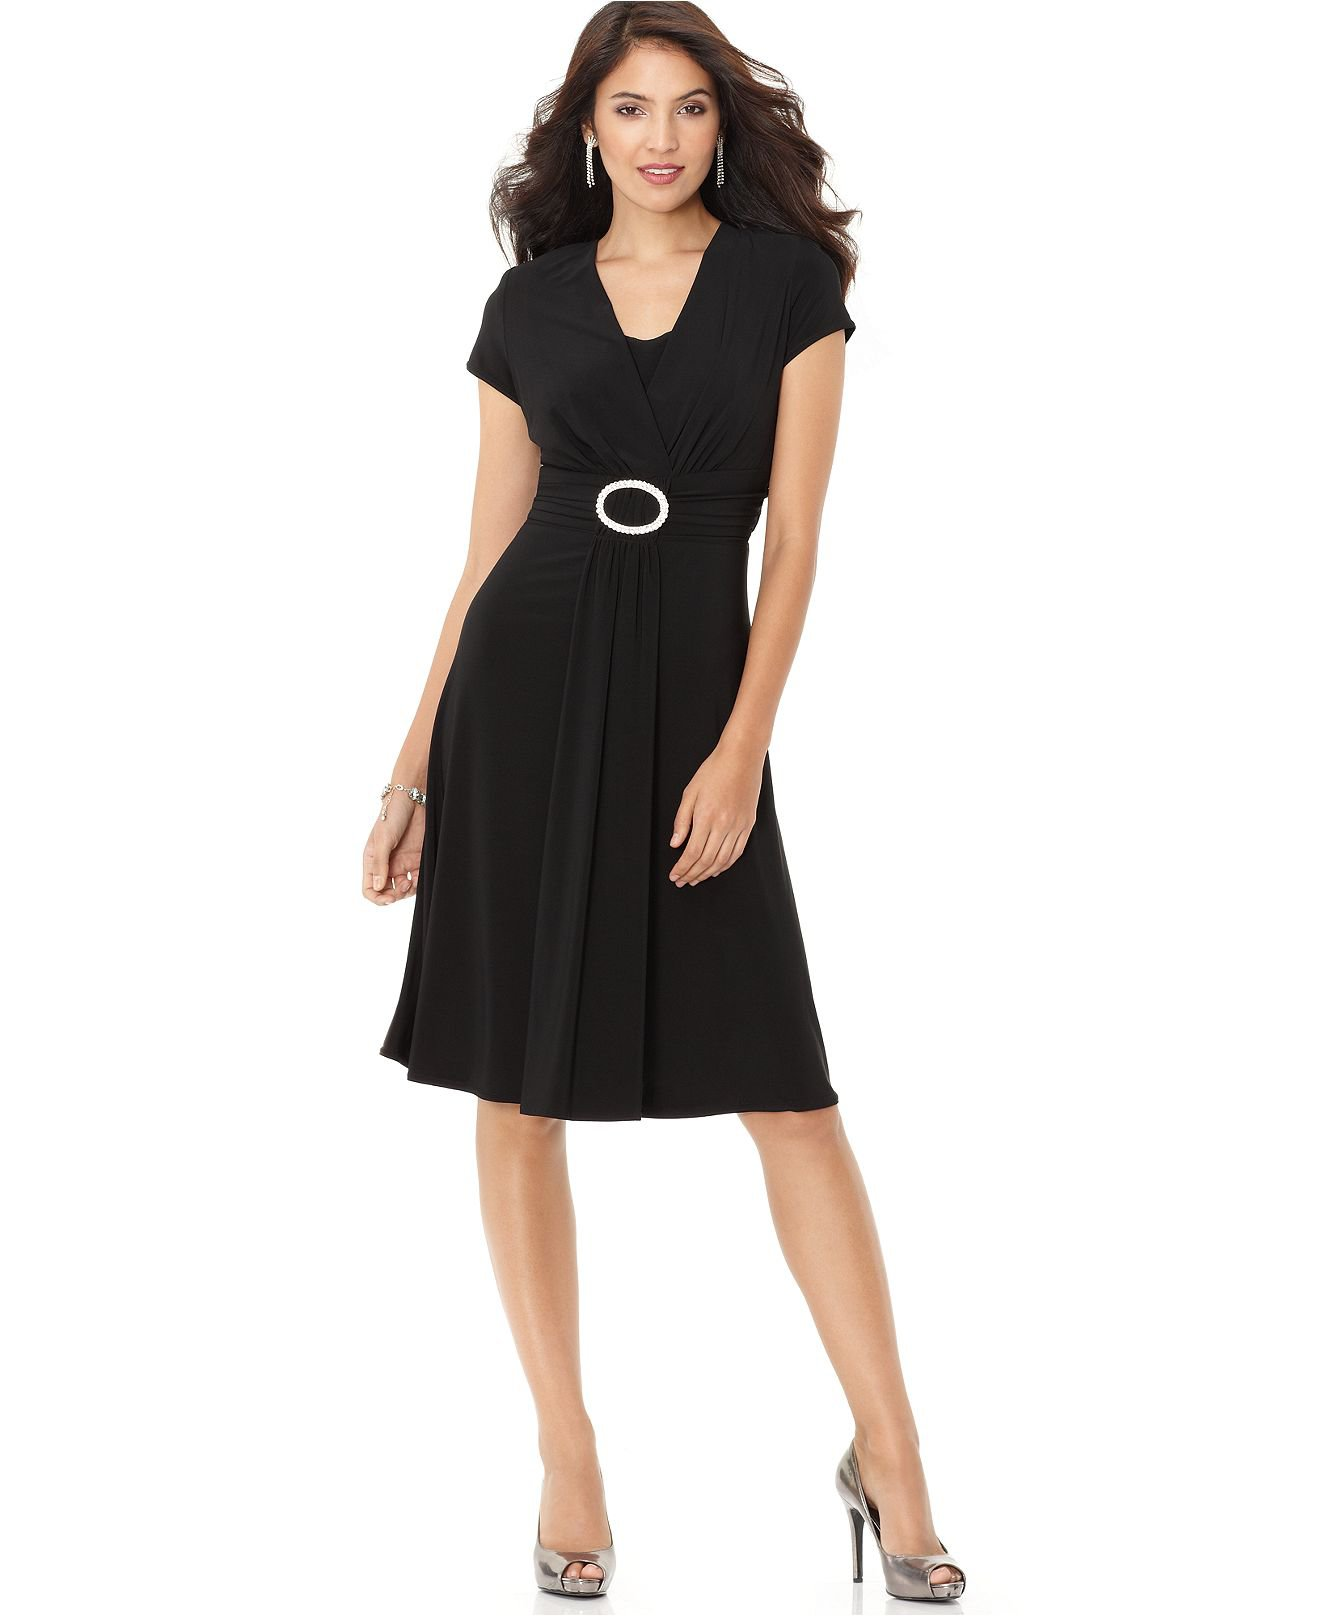 rm richards dress cap sleeve cocktail from macys if i had With macy s cocktail dresses for weddings